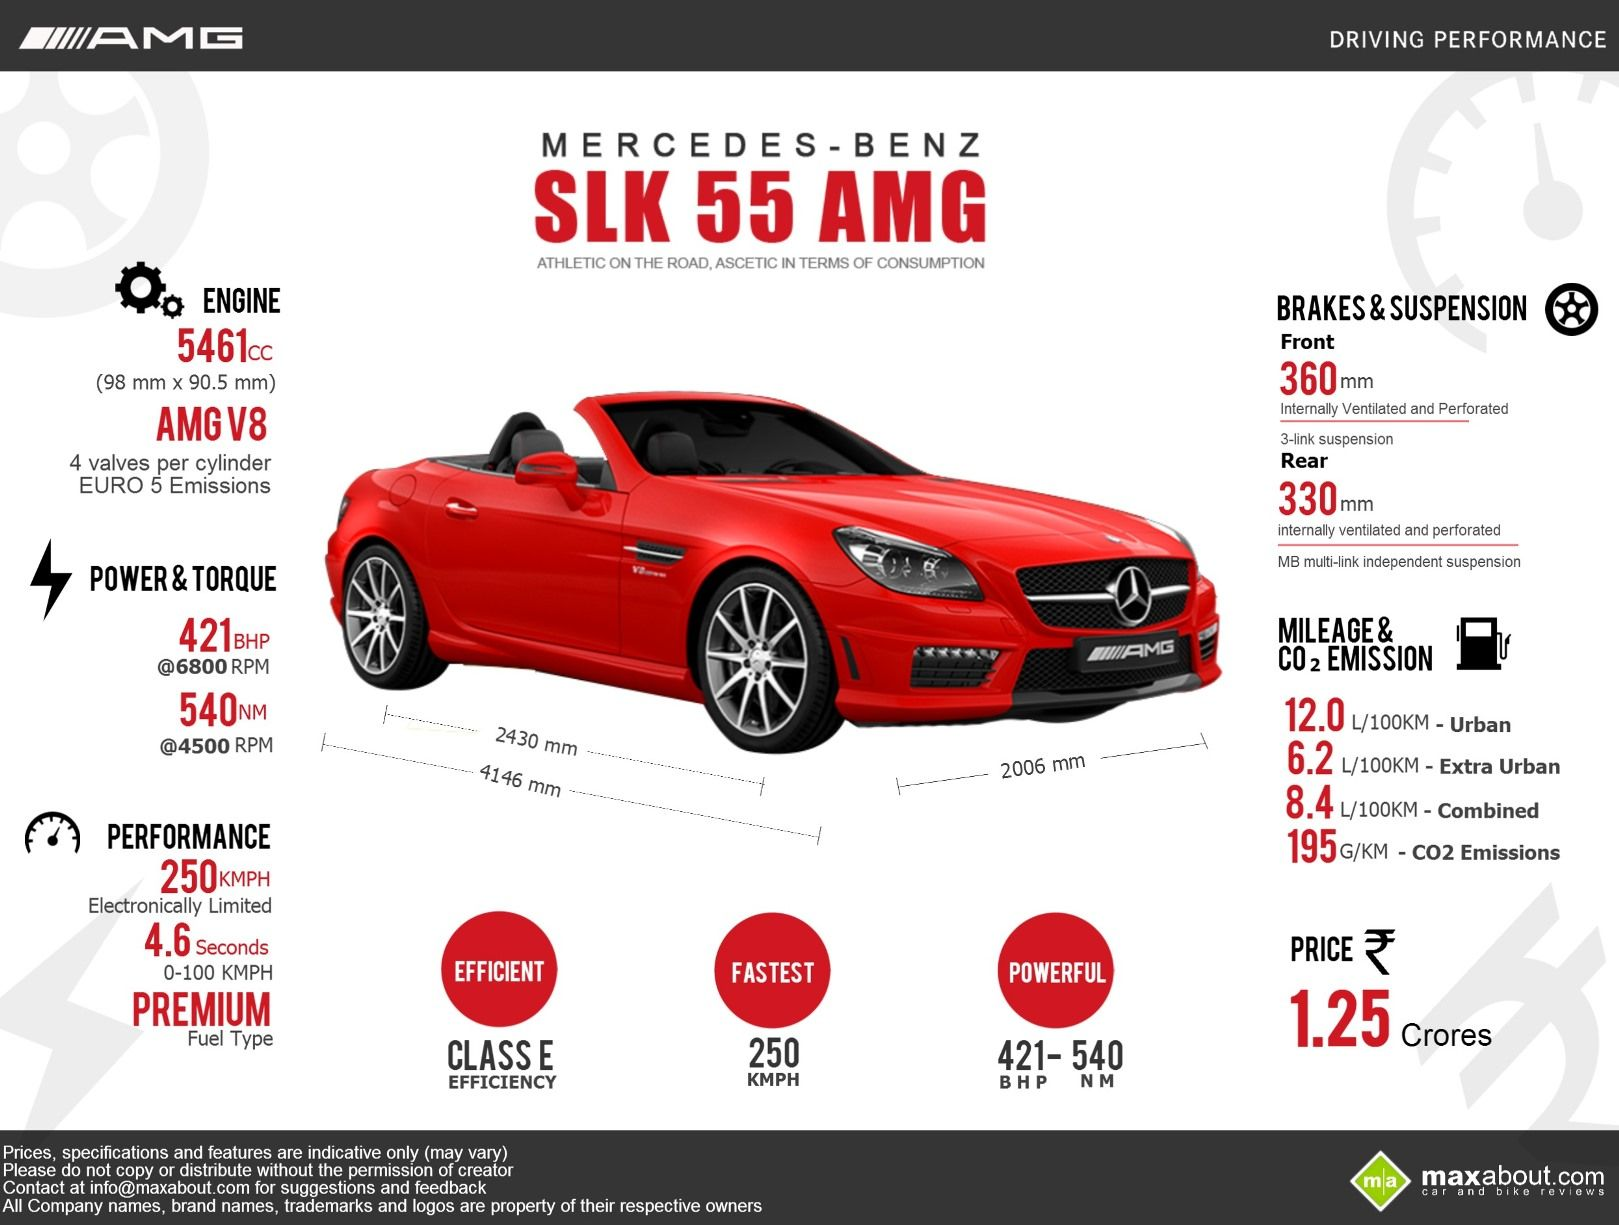 All You Need To Know About Mercedes Benz Slk 55 Amg